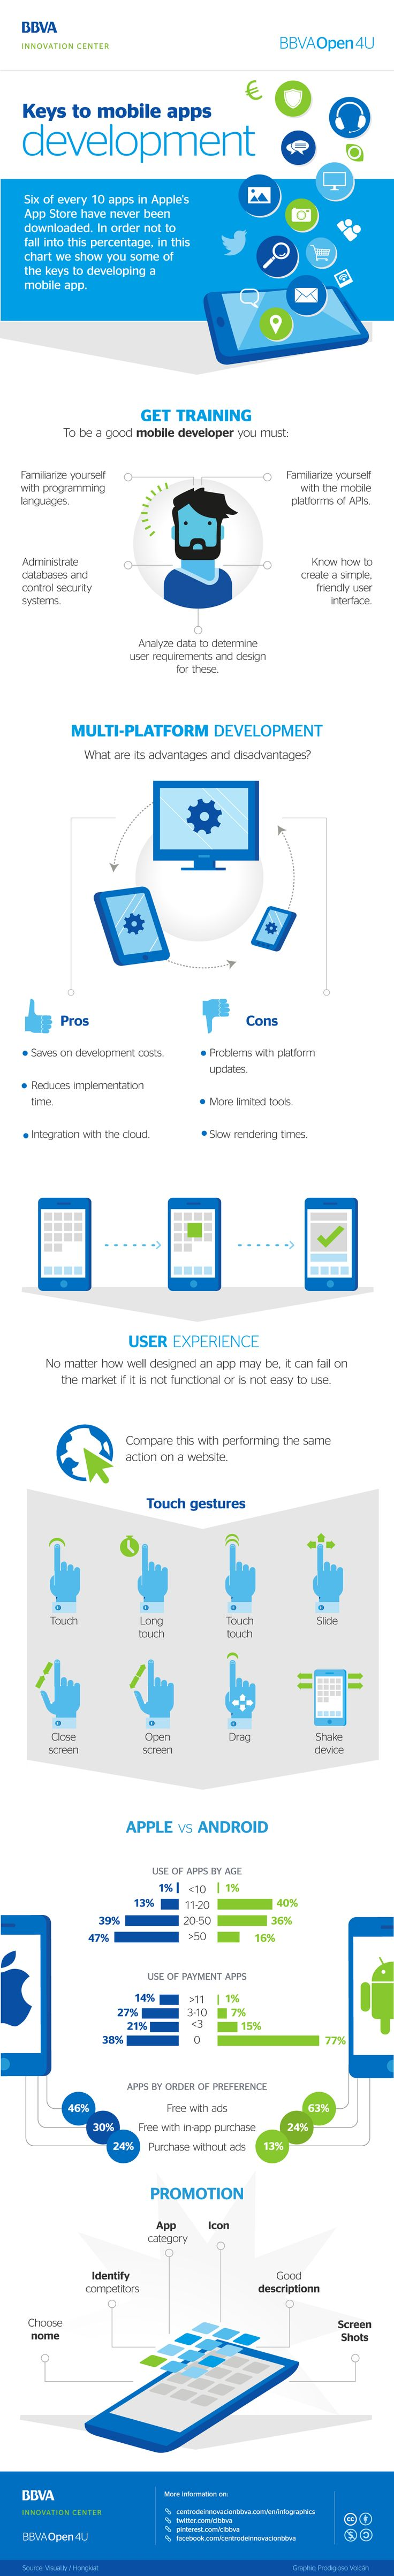 BBVA Open4u - Infographic: Keys to #mobile #apps #development. #Developers #Technology #Innovation